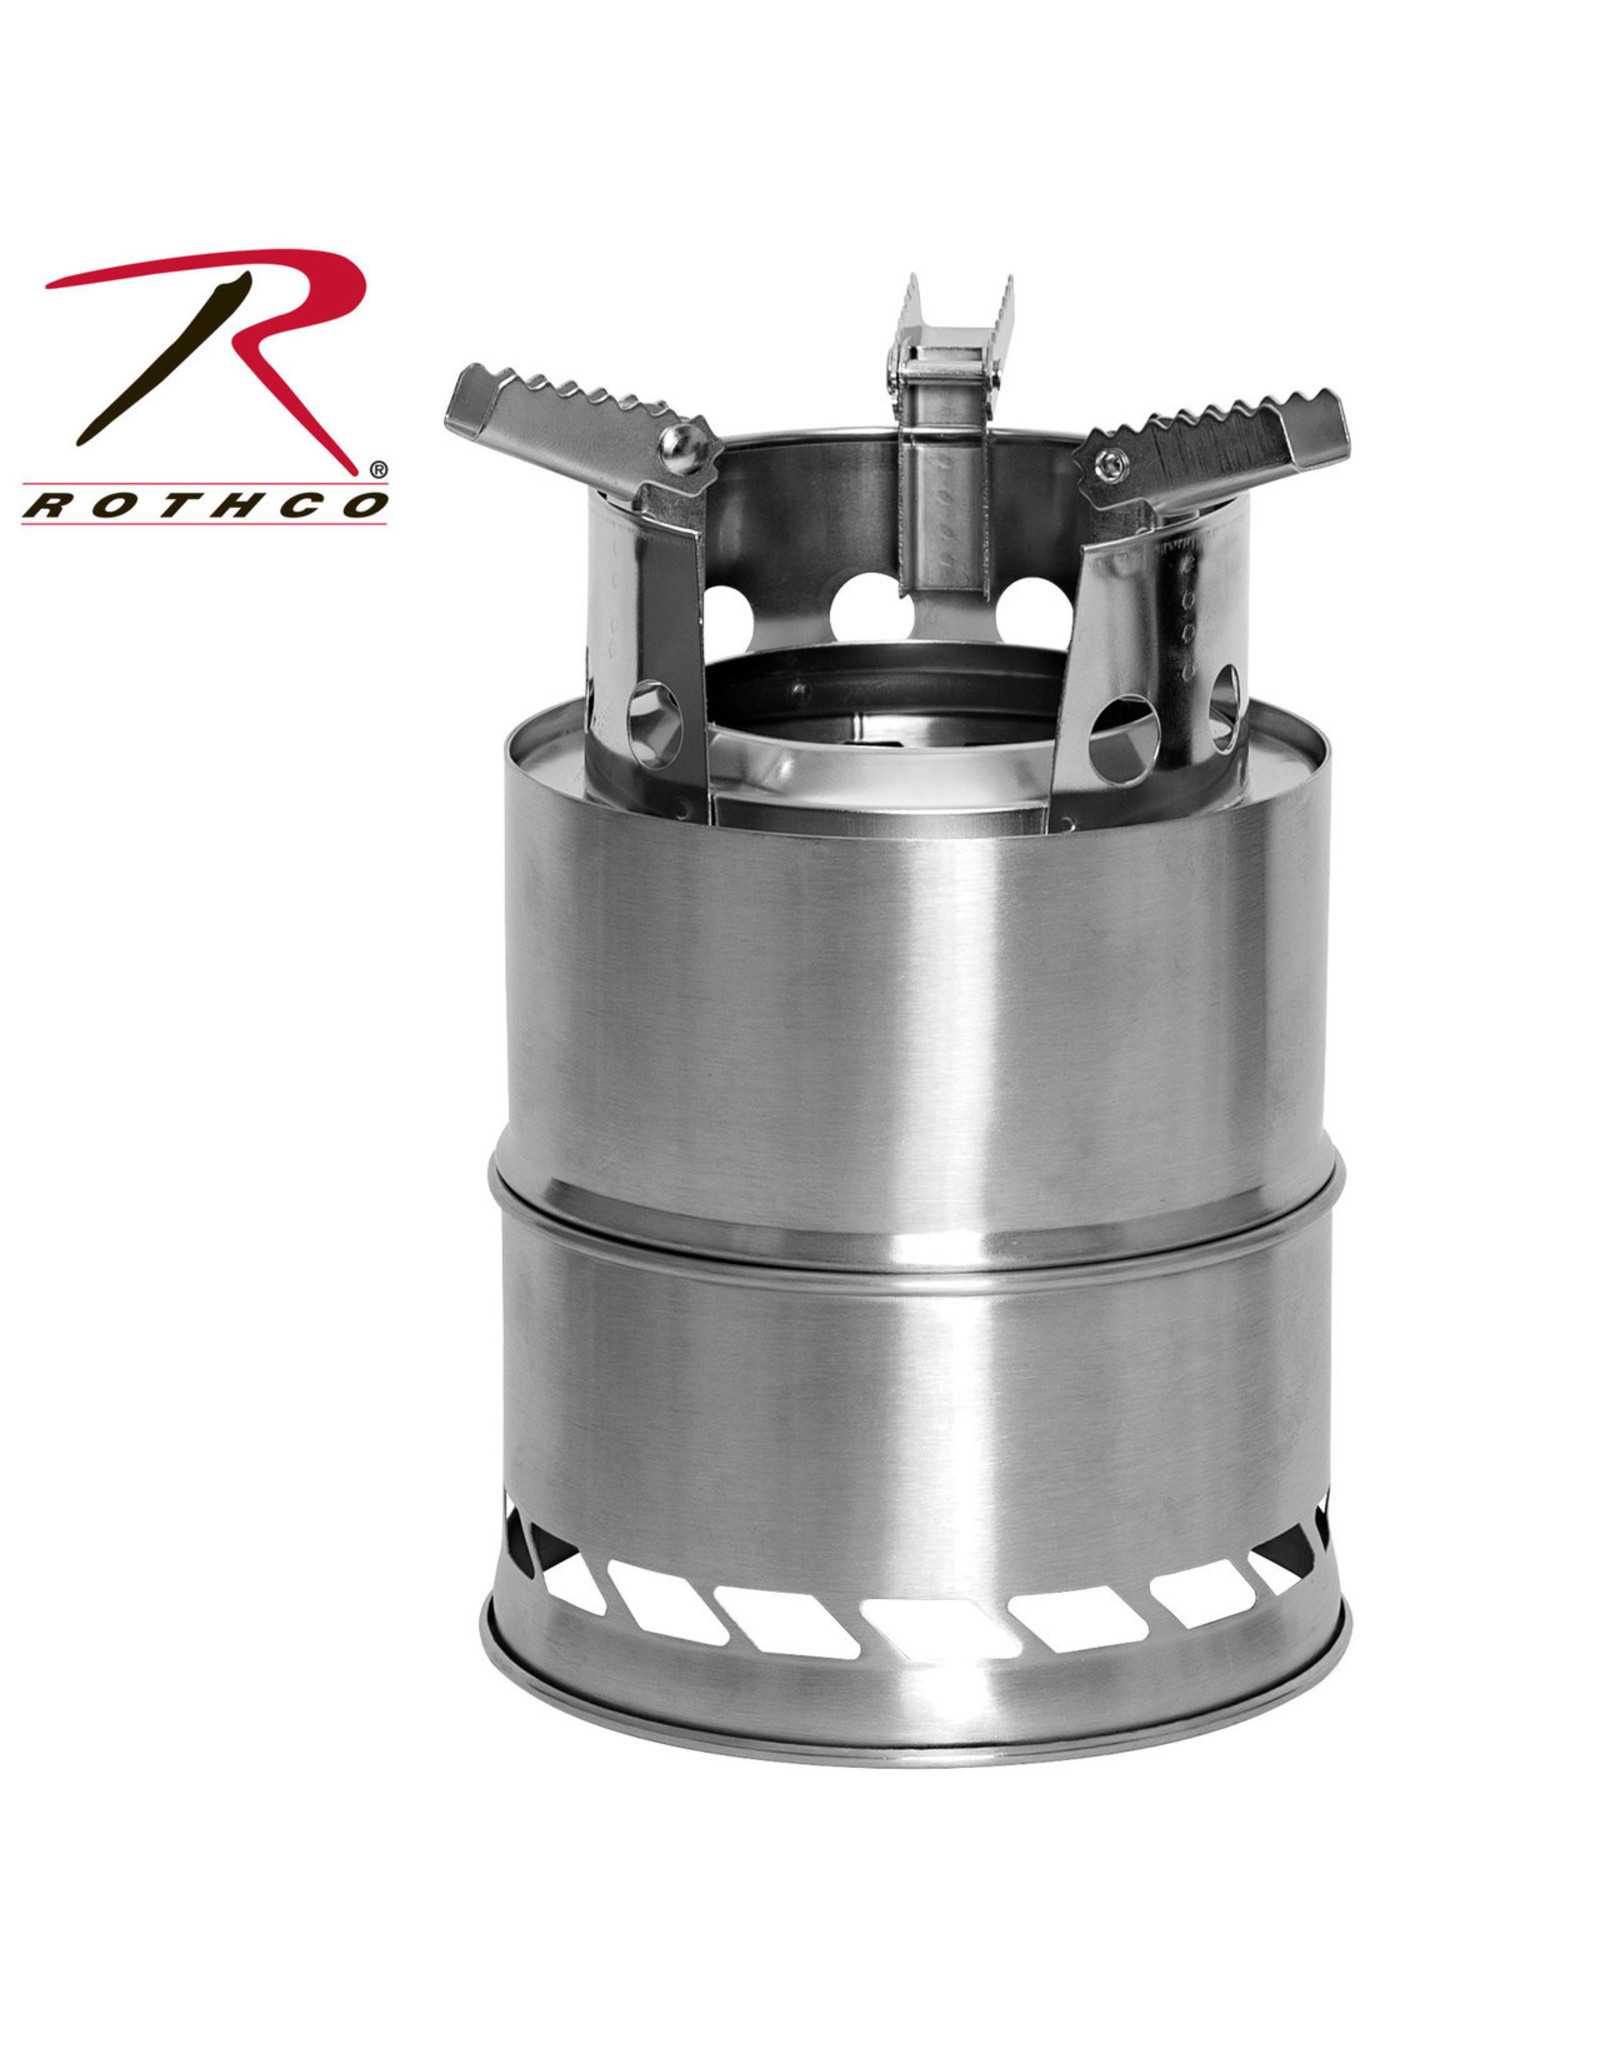 ROTHCO 6 PIECE STAINLESS STEEL CAMPING STOVE